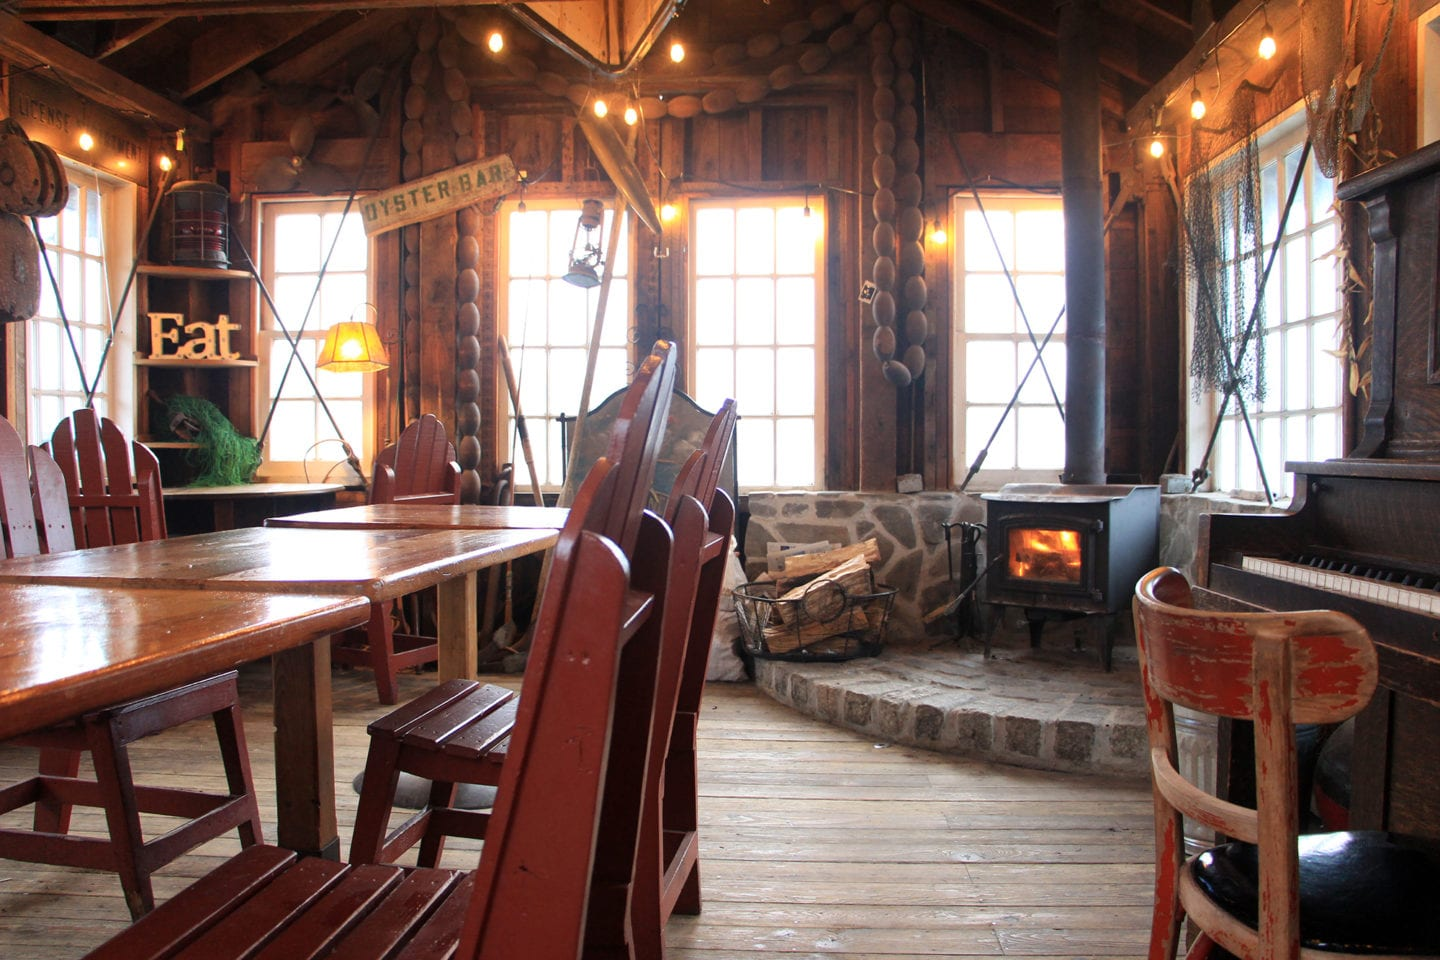 Interior of the boat shack at Nick's Cove